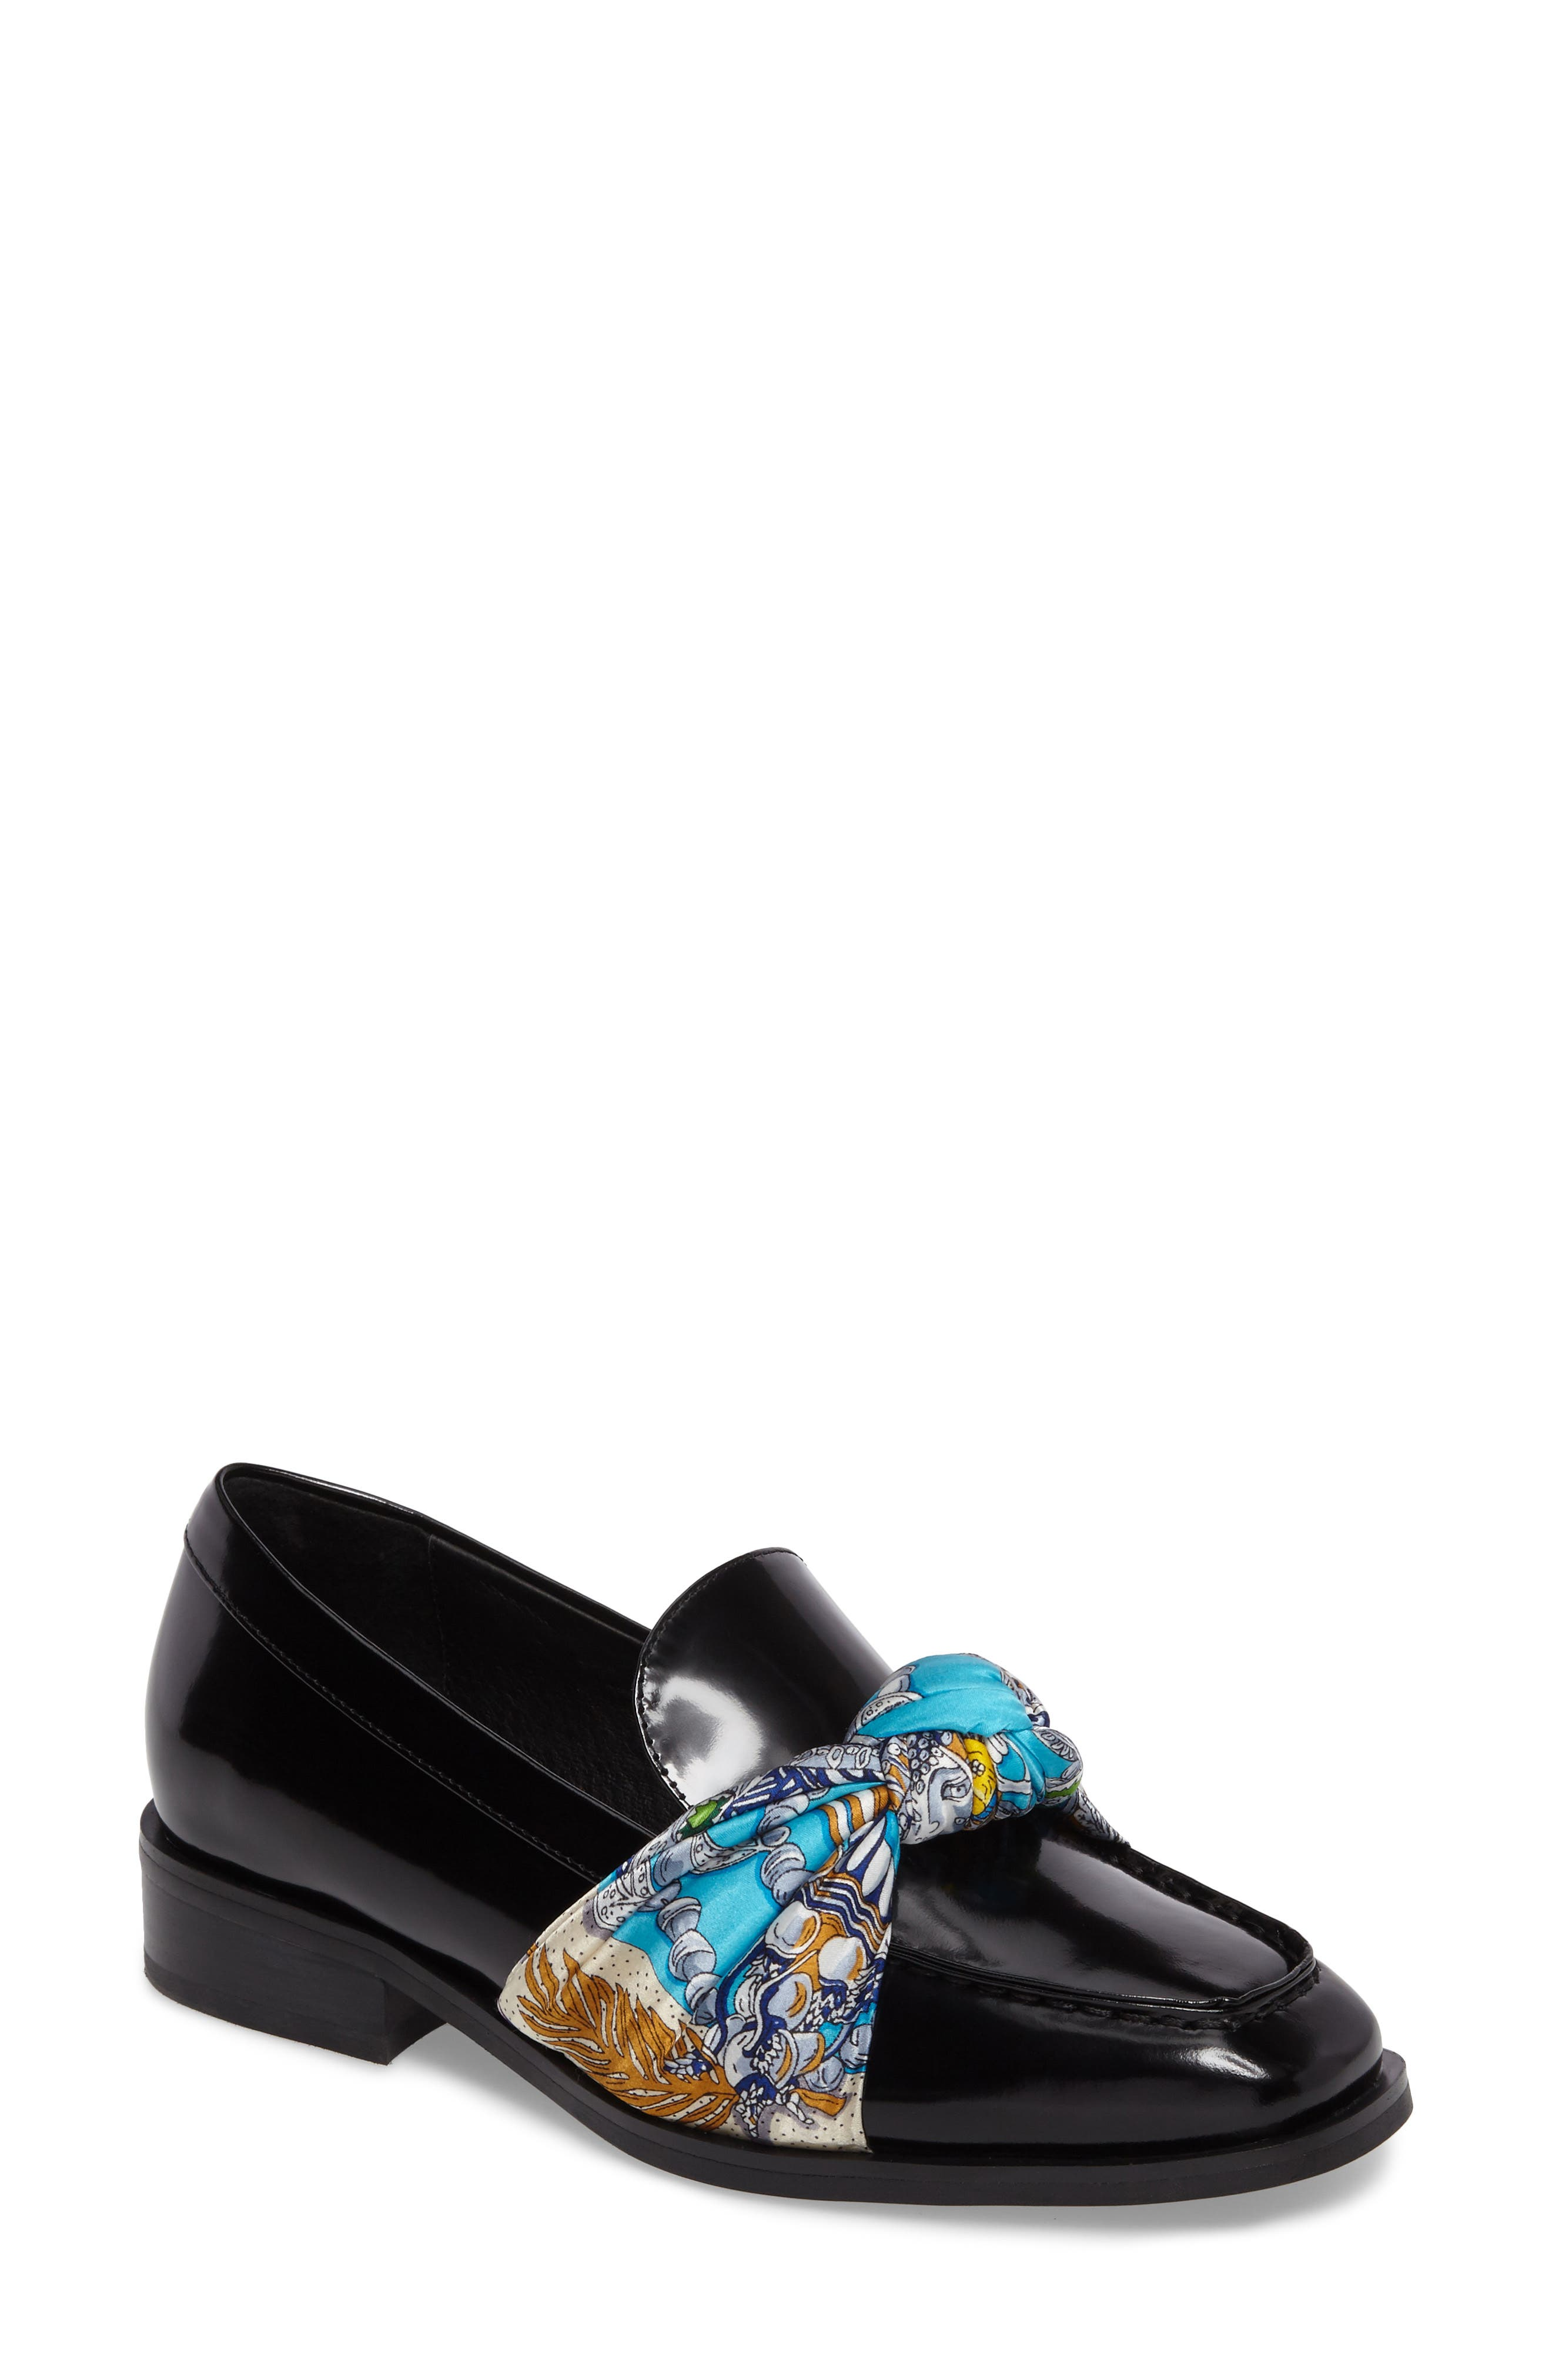 Main Image - Jeffrey Campbell Bollero Loafer (Women)